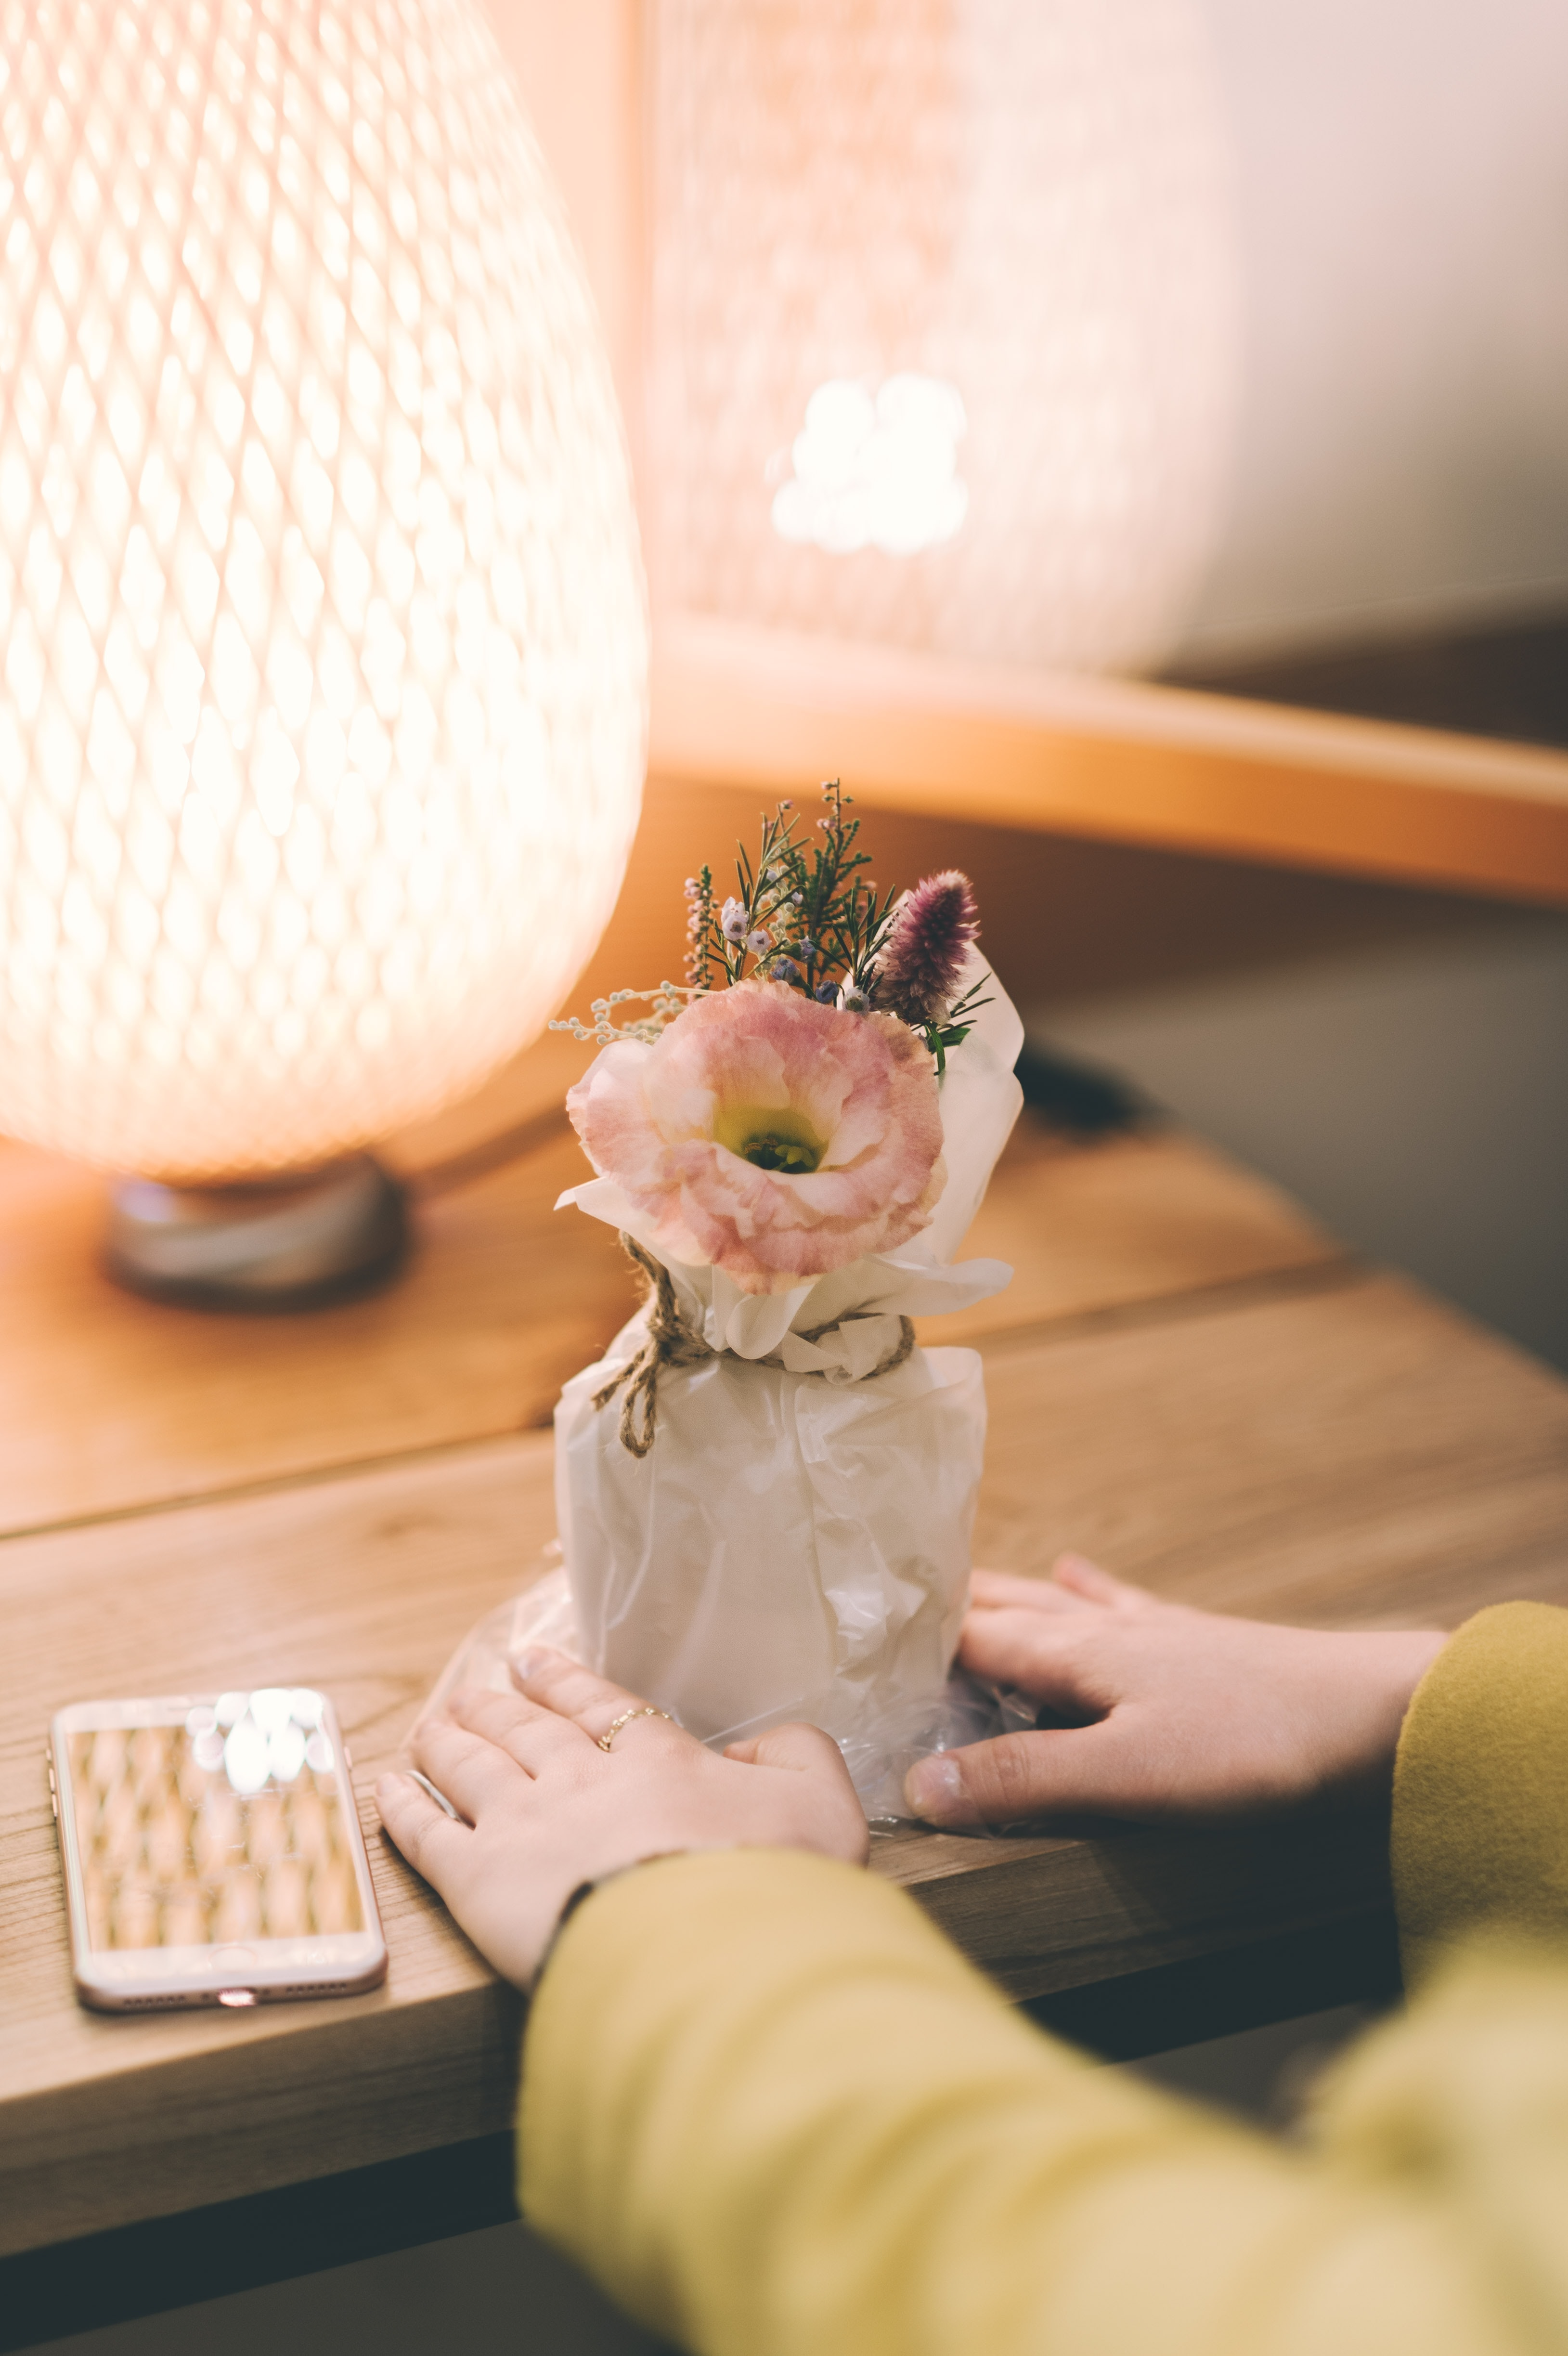 person holding white and pink flowers in pot on table